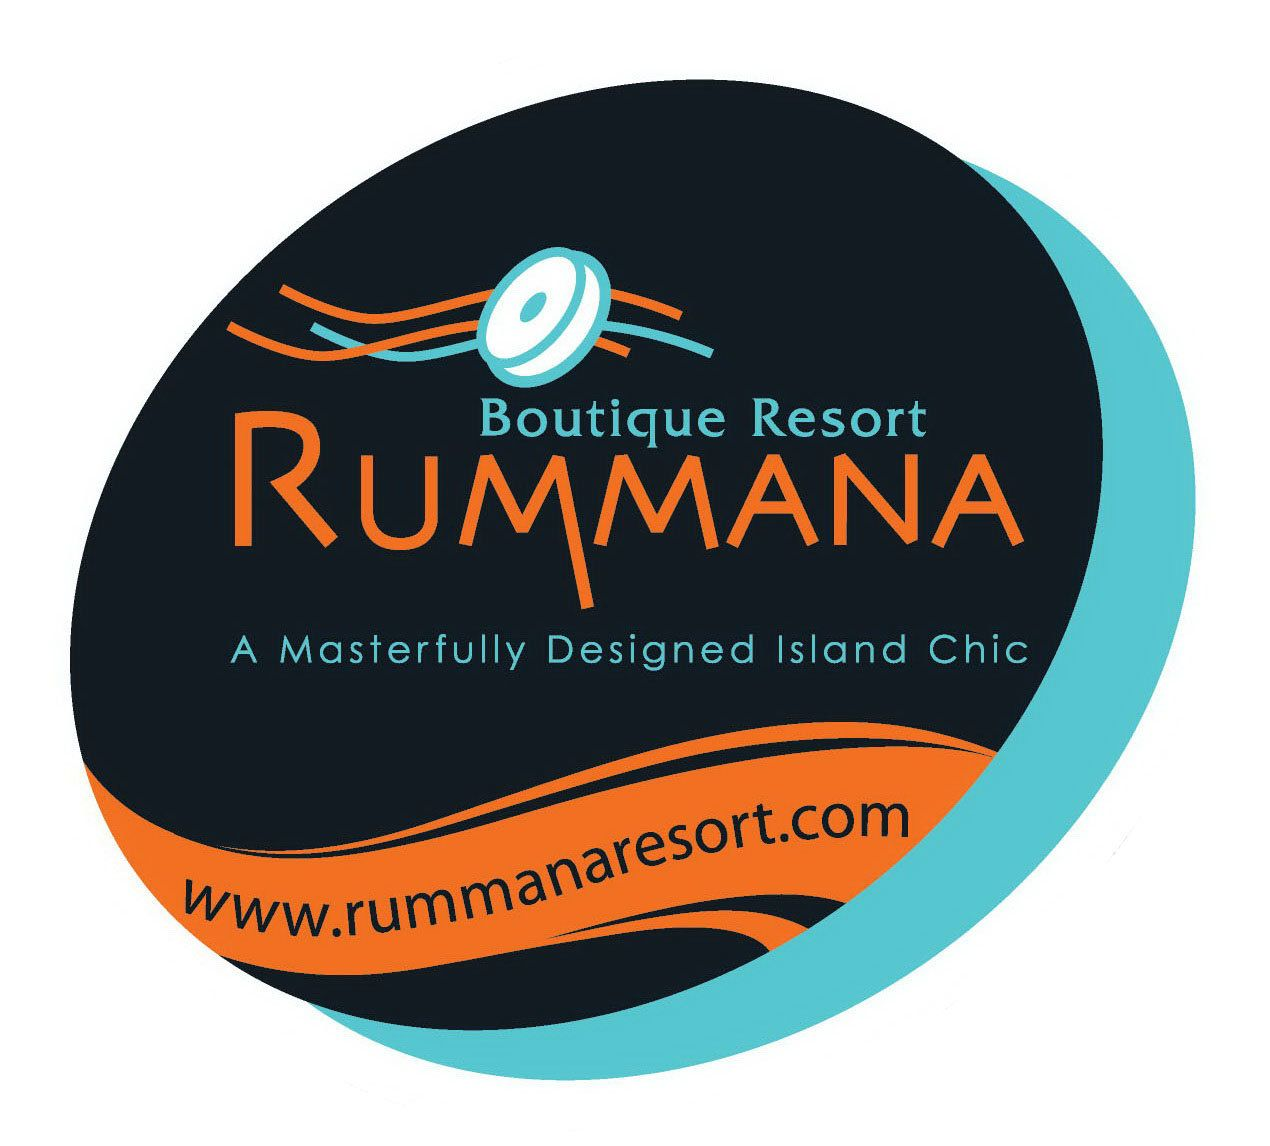 Rummana Boutique Resort